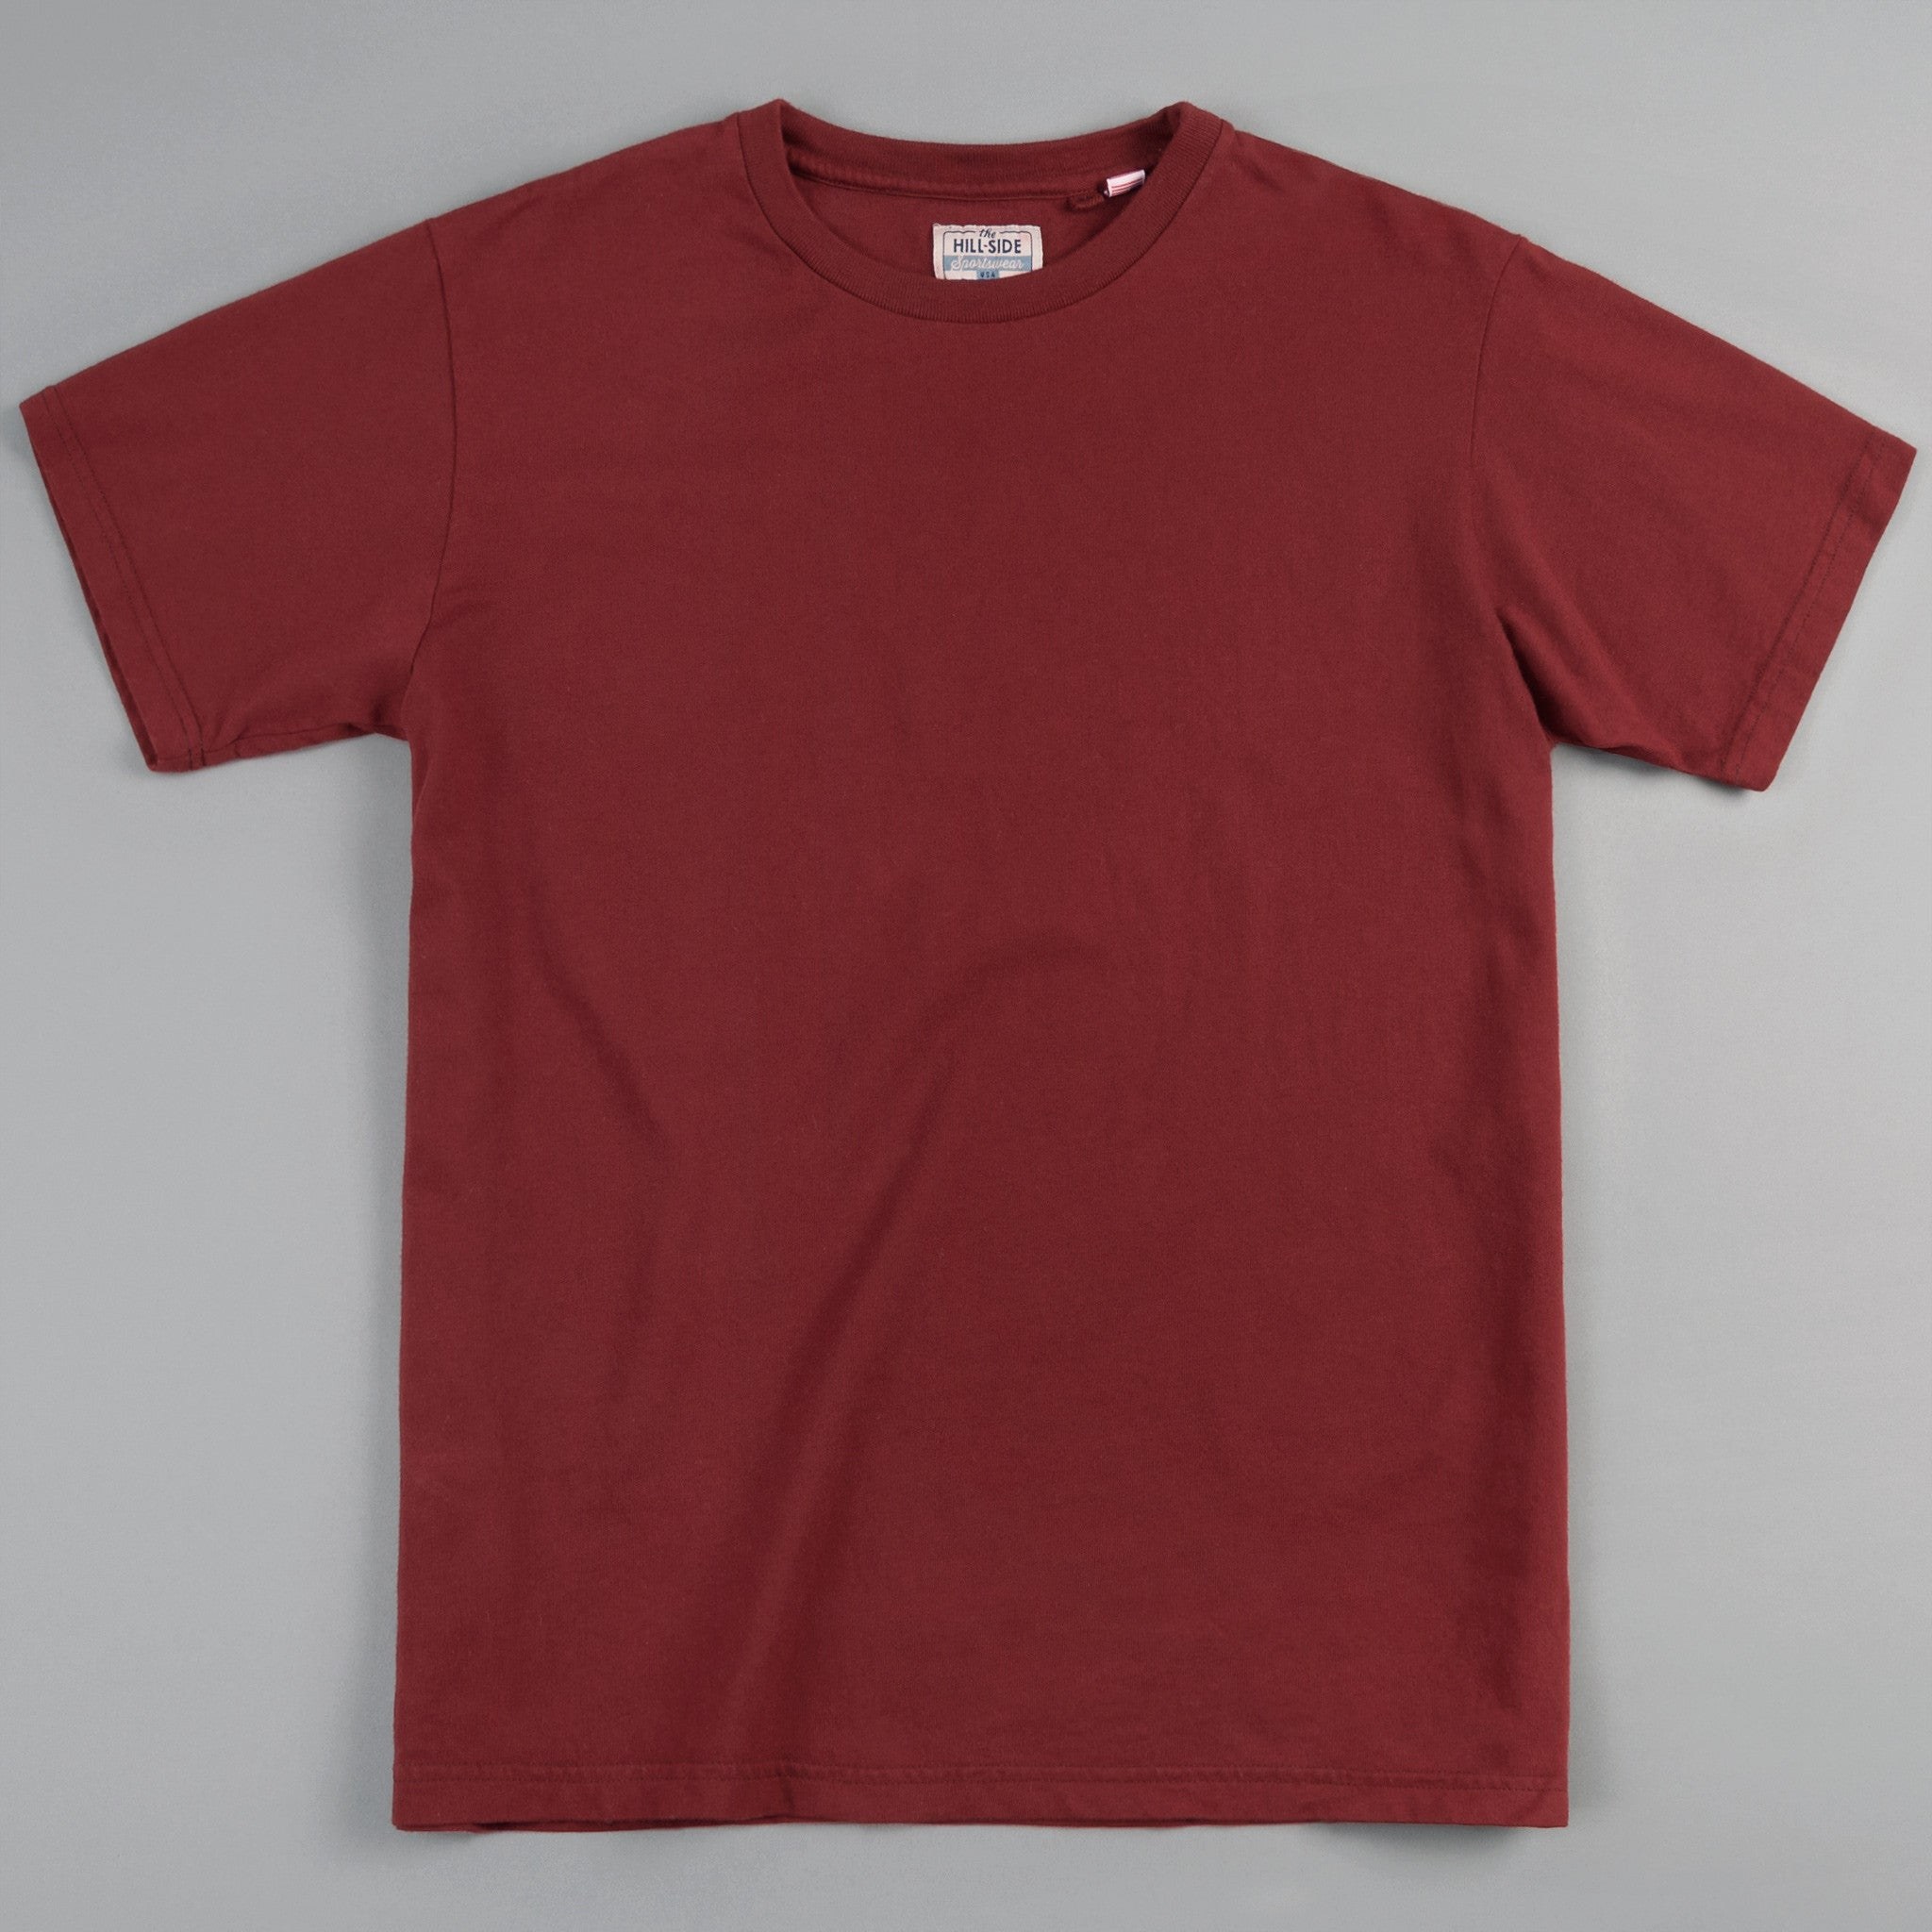 The Hill-Side - T-Shirt, Brick Red - TS1-0005 - image 1